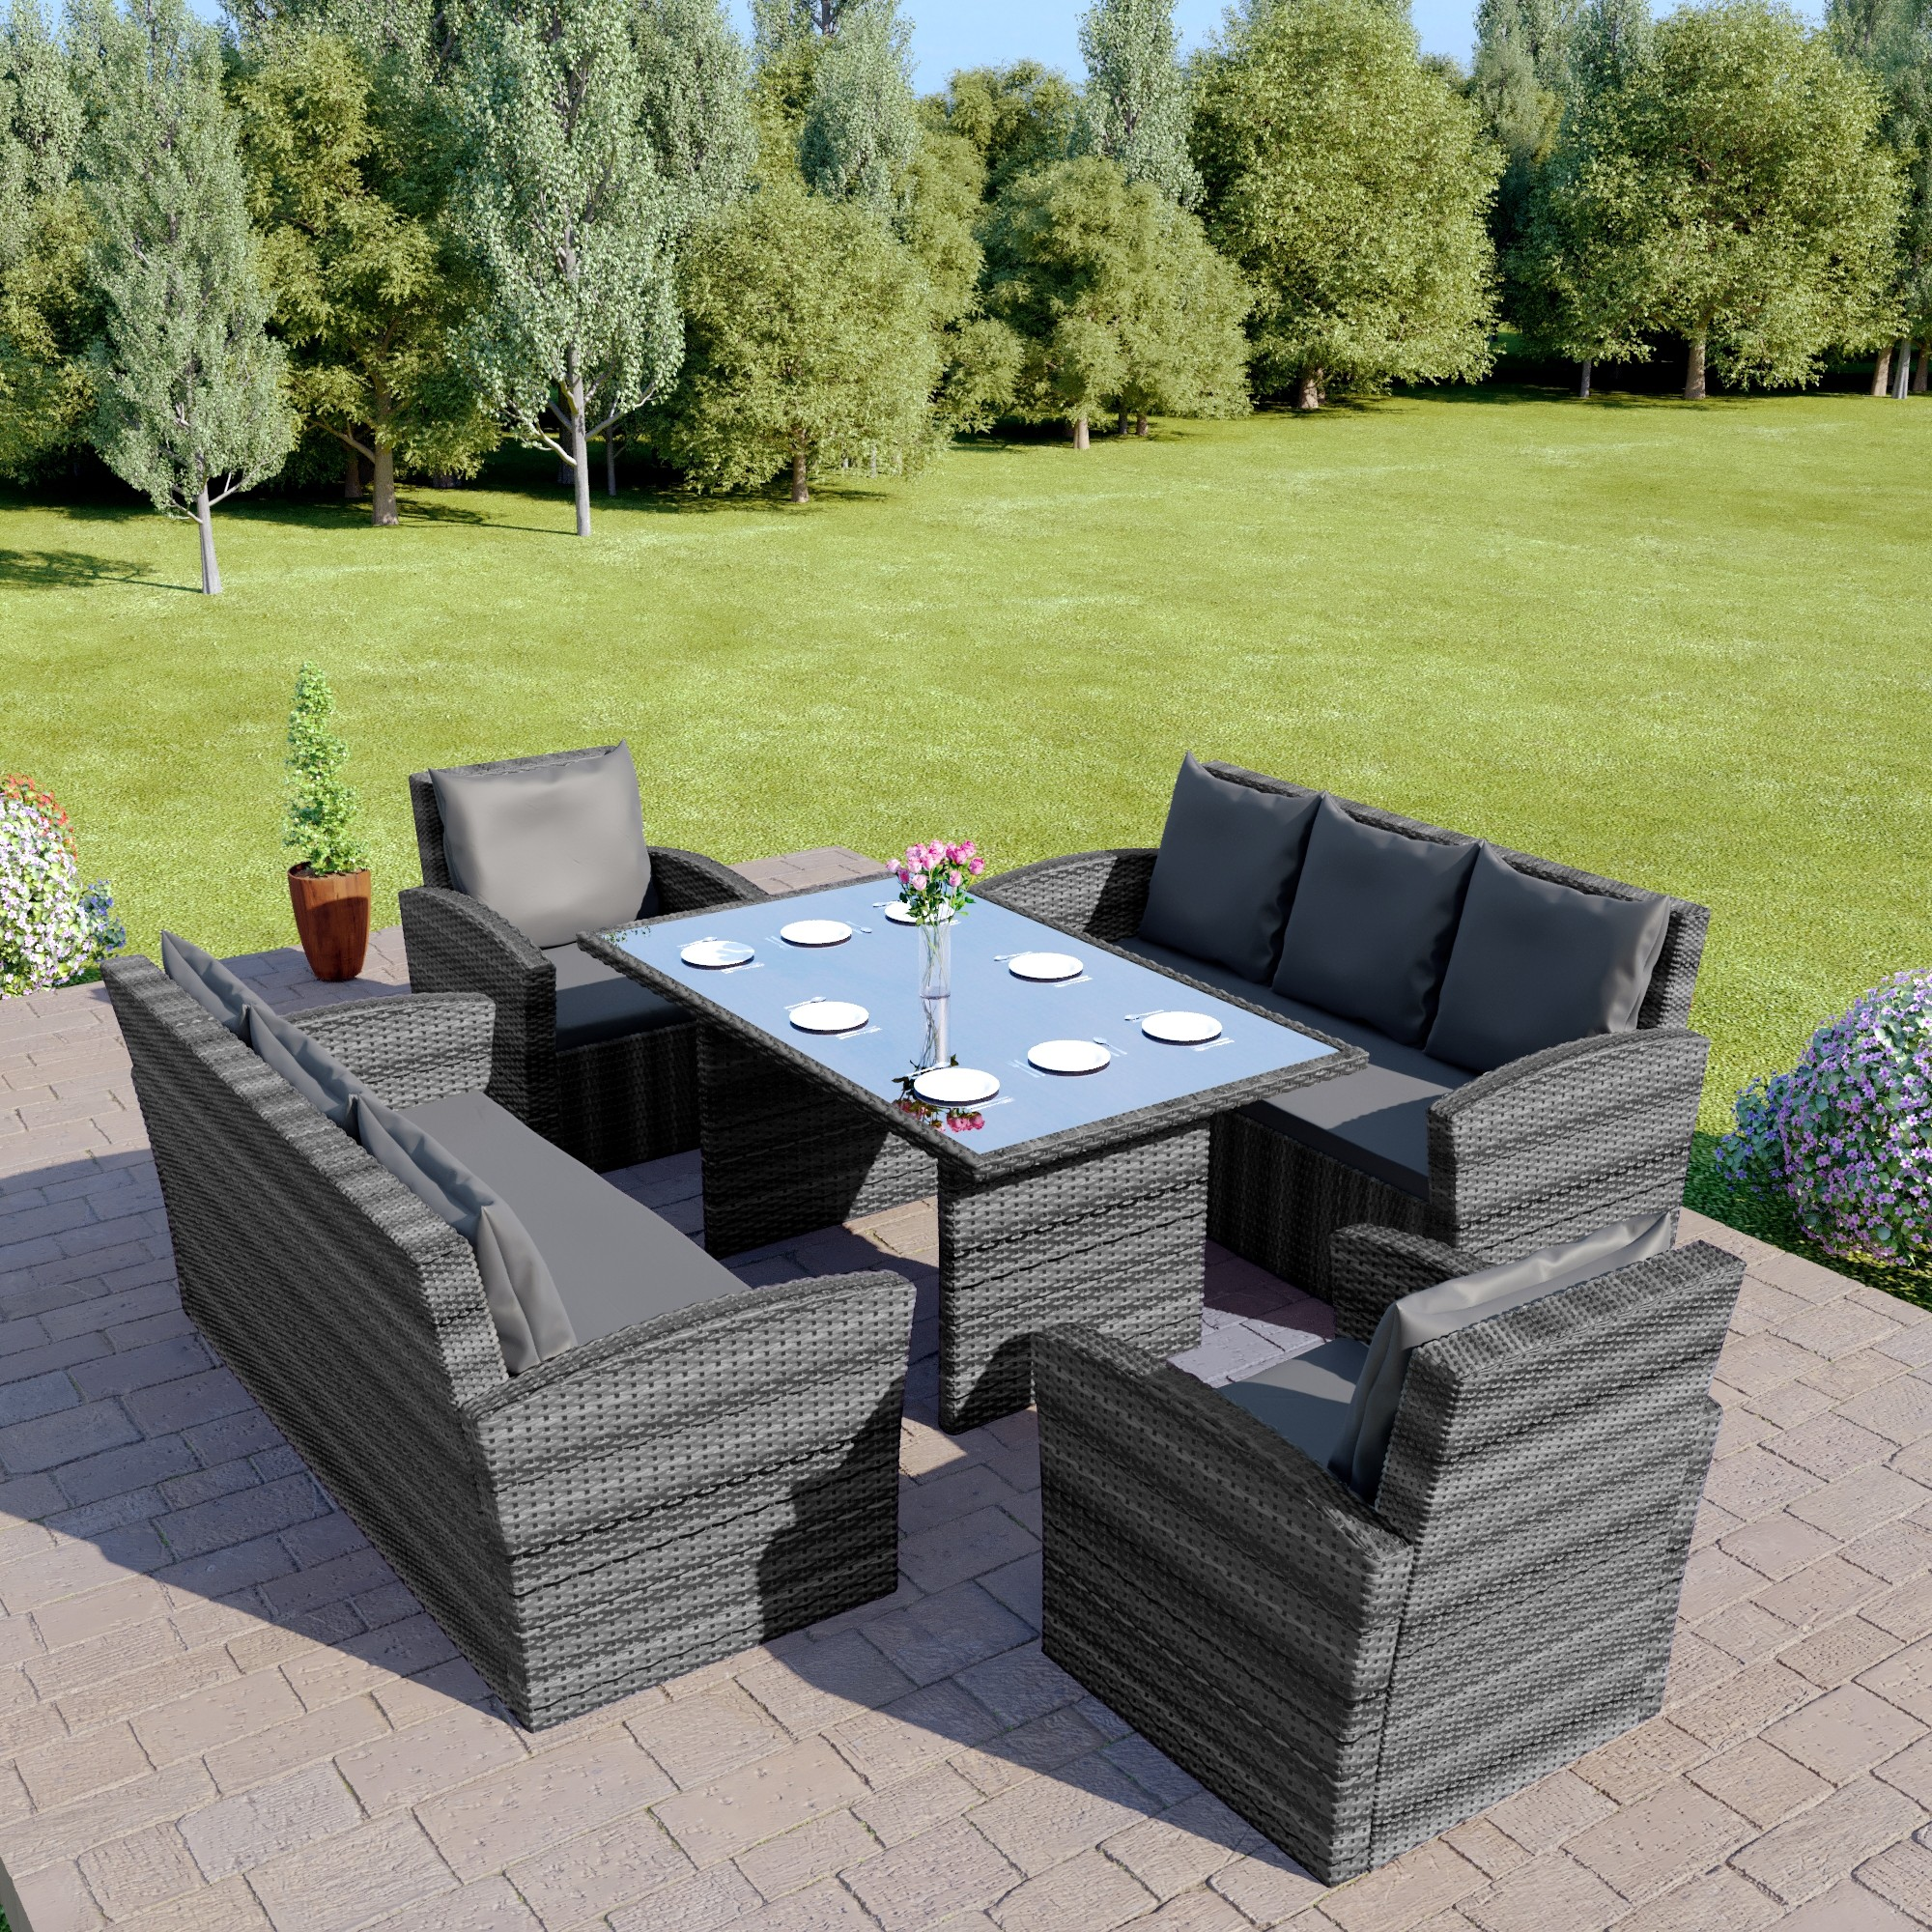 Stupendous Miami 8 Seater Garden Furniture Set In Dark Mix Grey With Dark Cushions Home Remodeling Inspirations Genioncuboardxyz